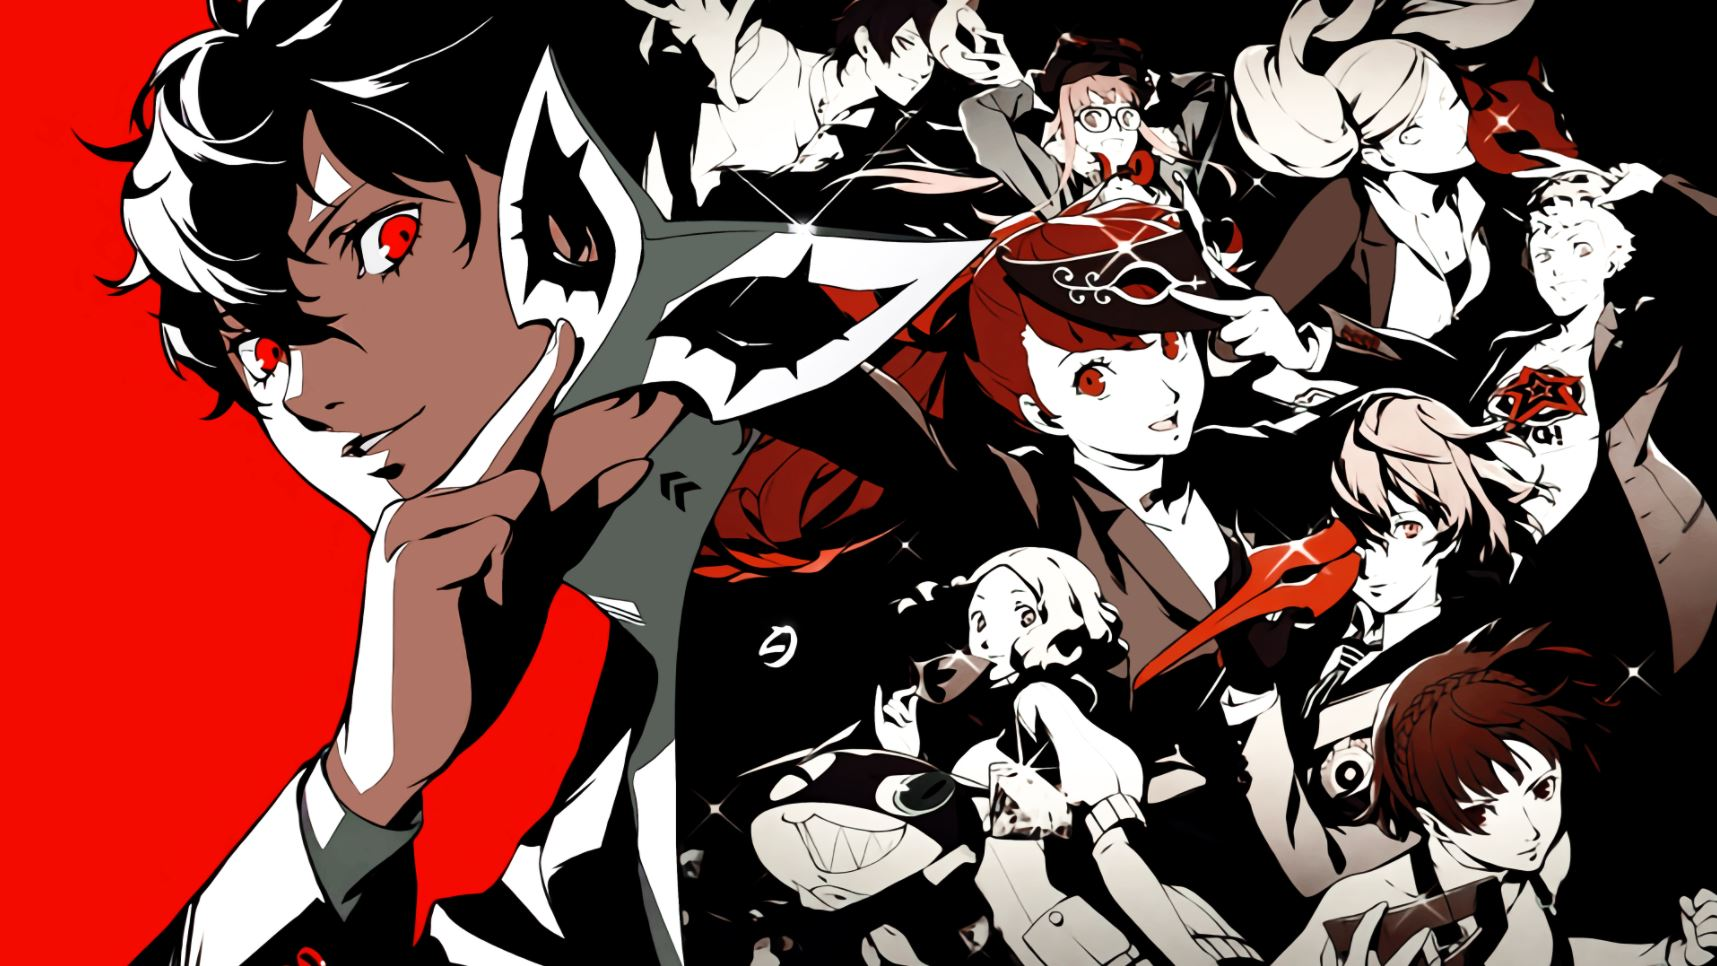 sega-wants-persona-developer-atlus-to-switch-to-worldwide-releases-in-wake-of-yakuza-like-a-dragons-success